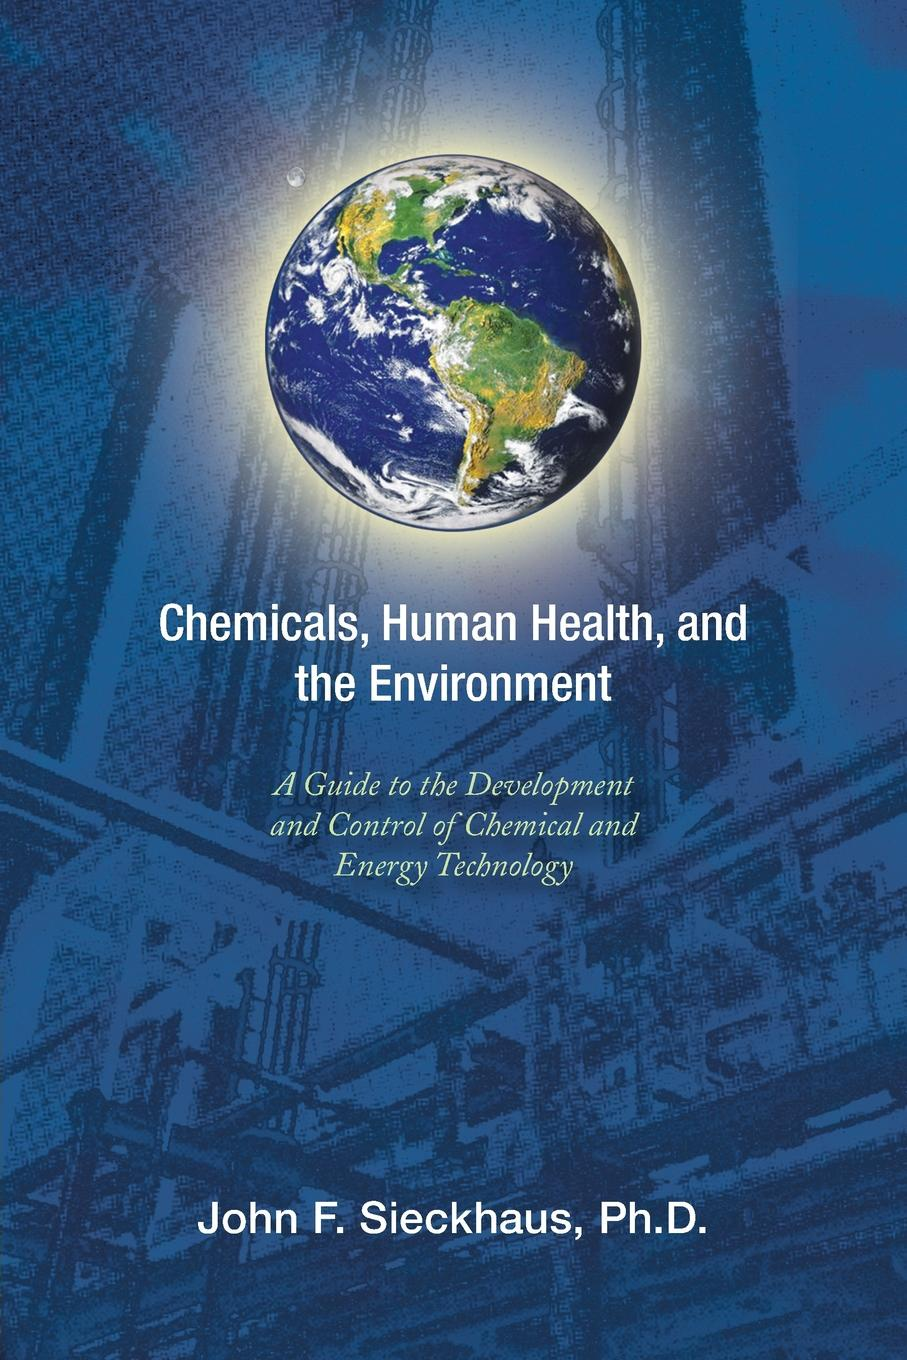 John F. Sieckhaus Ph.D. Chemicals, Human Health, and the Environment. A Guide to the Development and Control of Chemical and Energy Technology